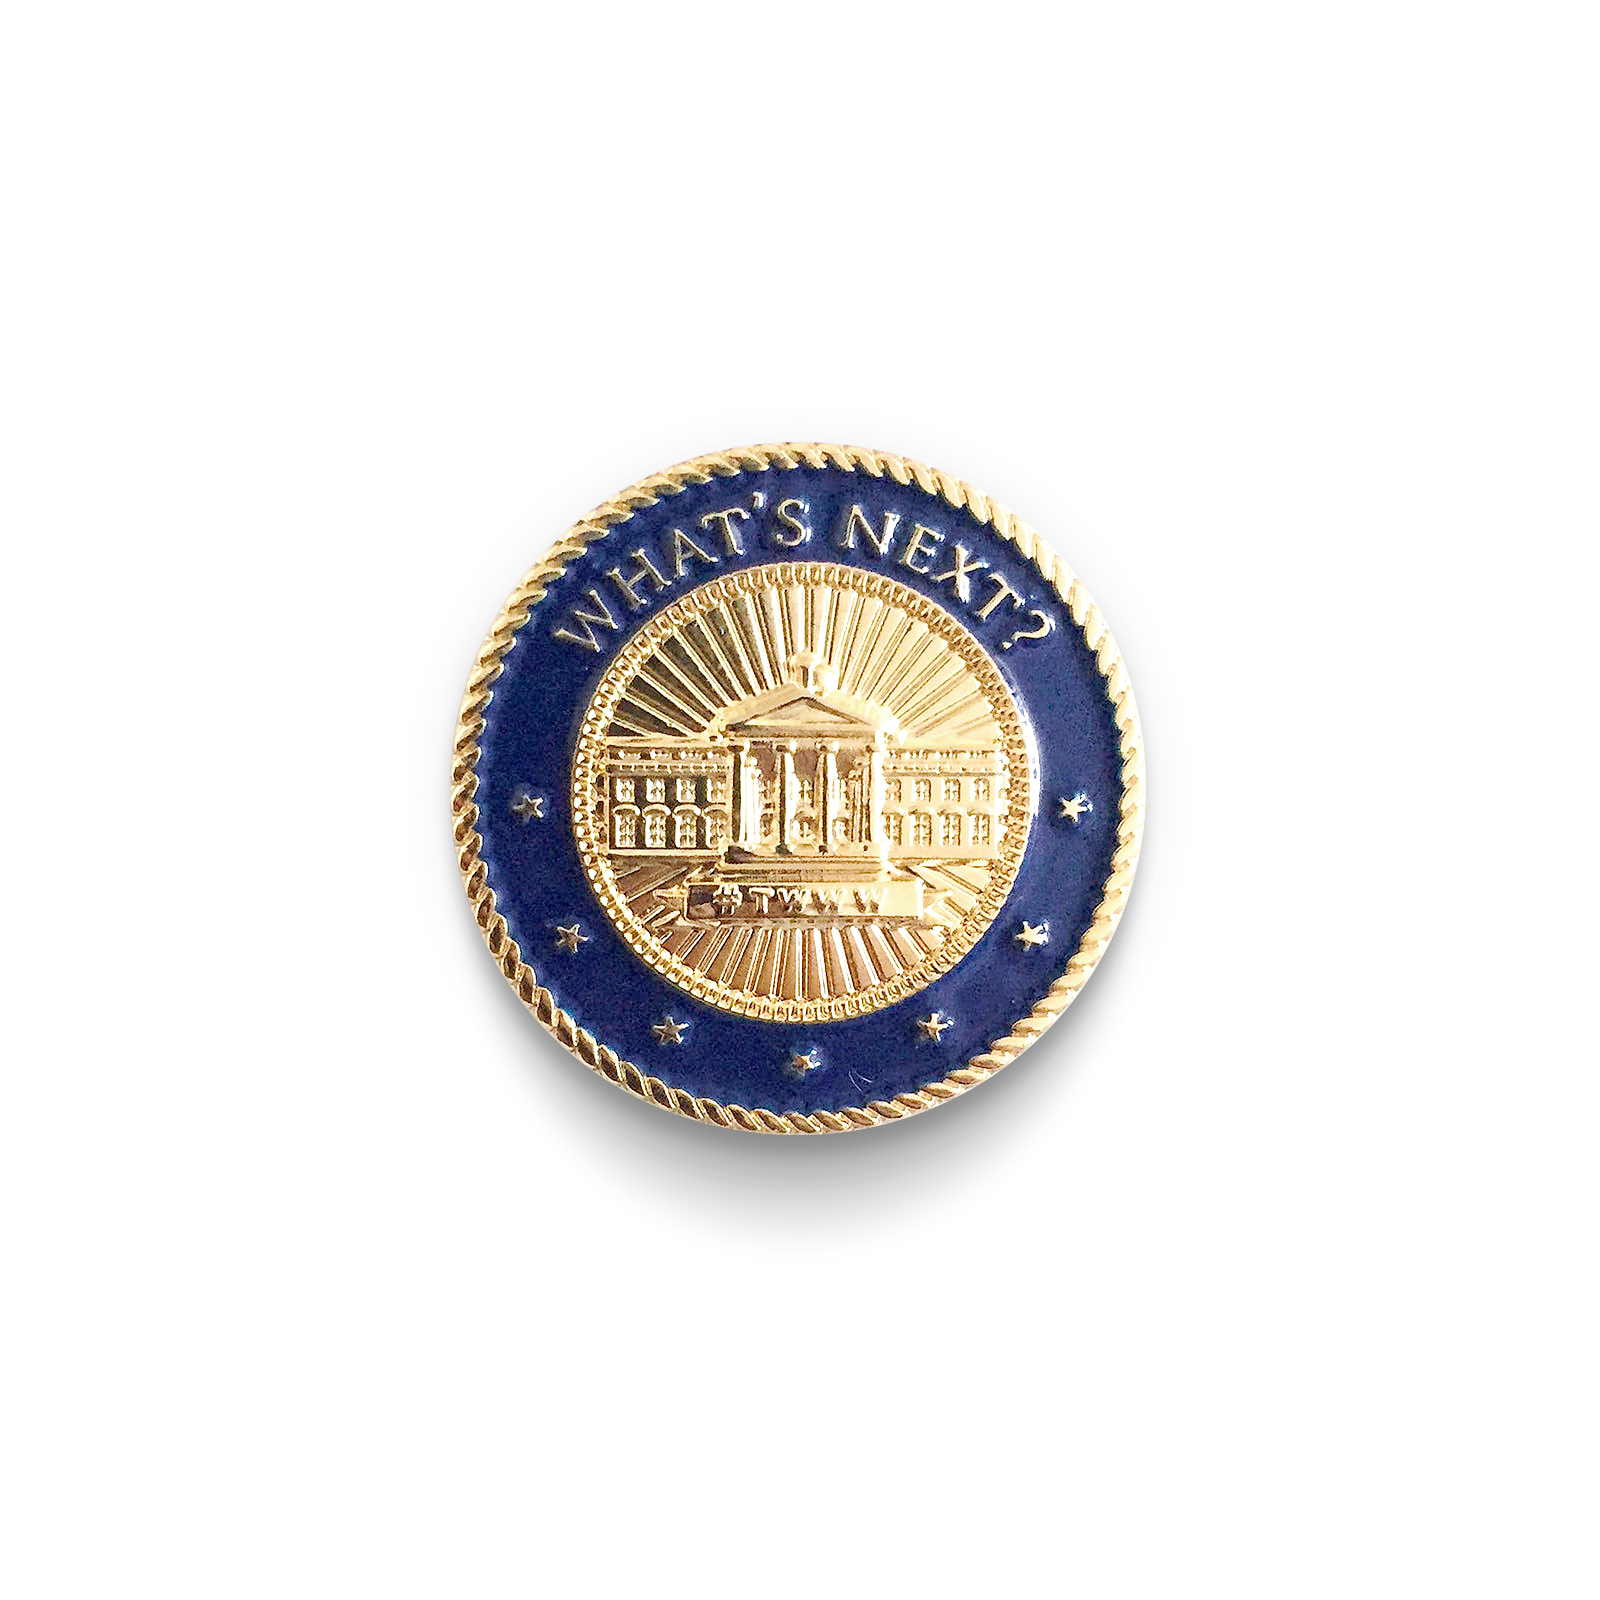 The West Wing Weekly Lapel Pin